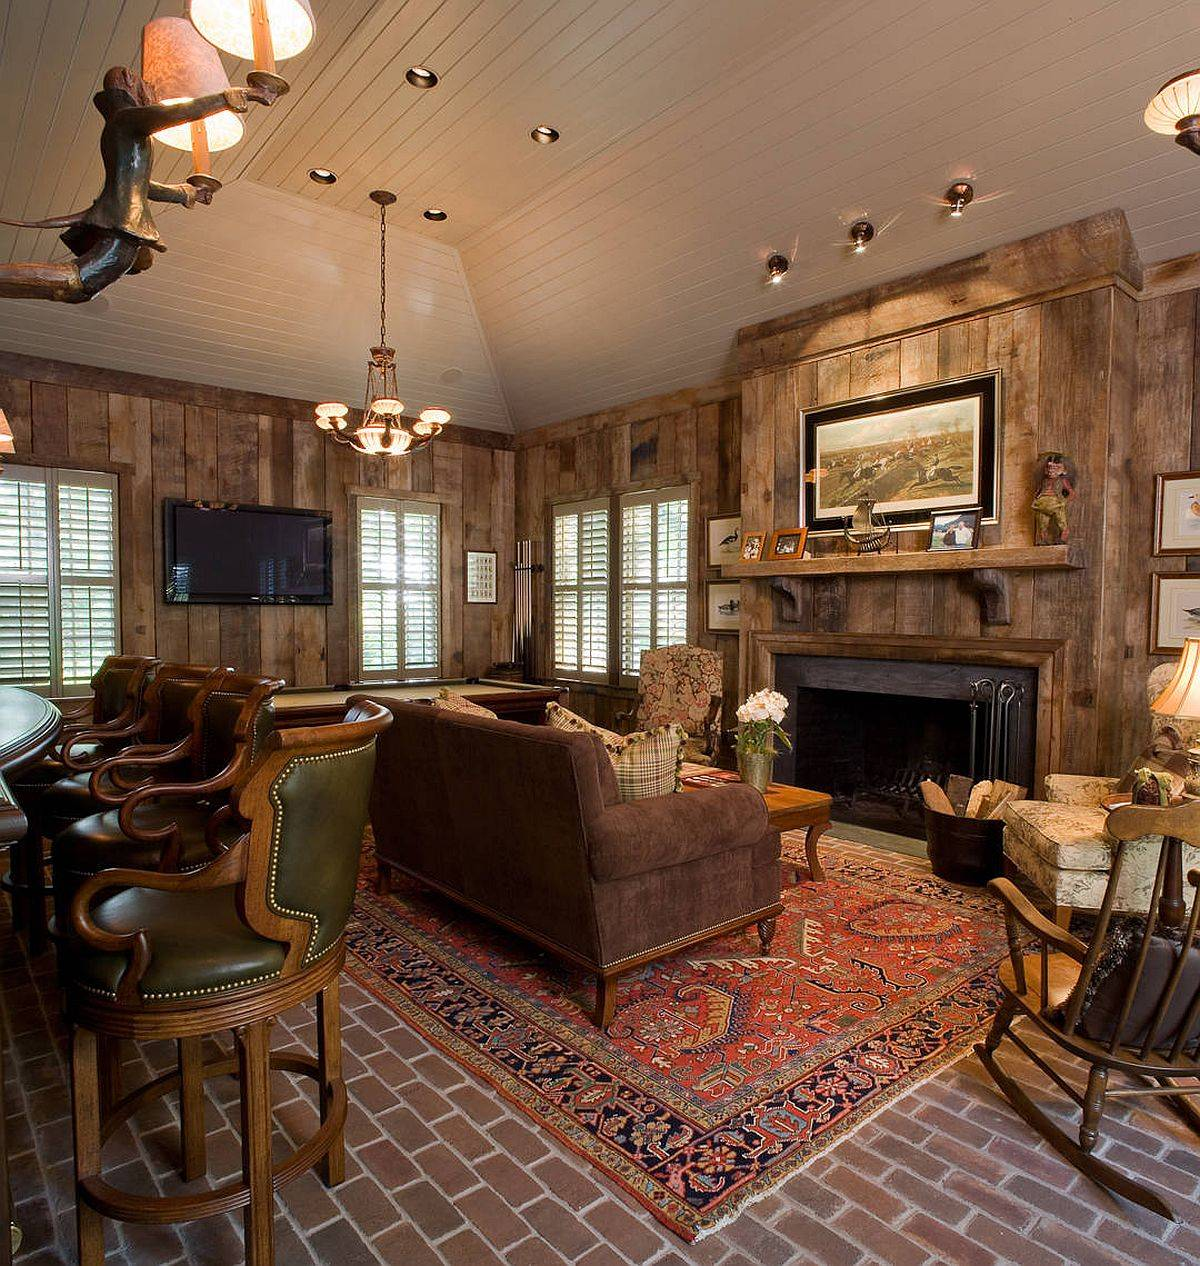 Small-and-cozy-rustic-living-room-with-wooden-walls-is-inspired-by-the-log-cabin-look-77323